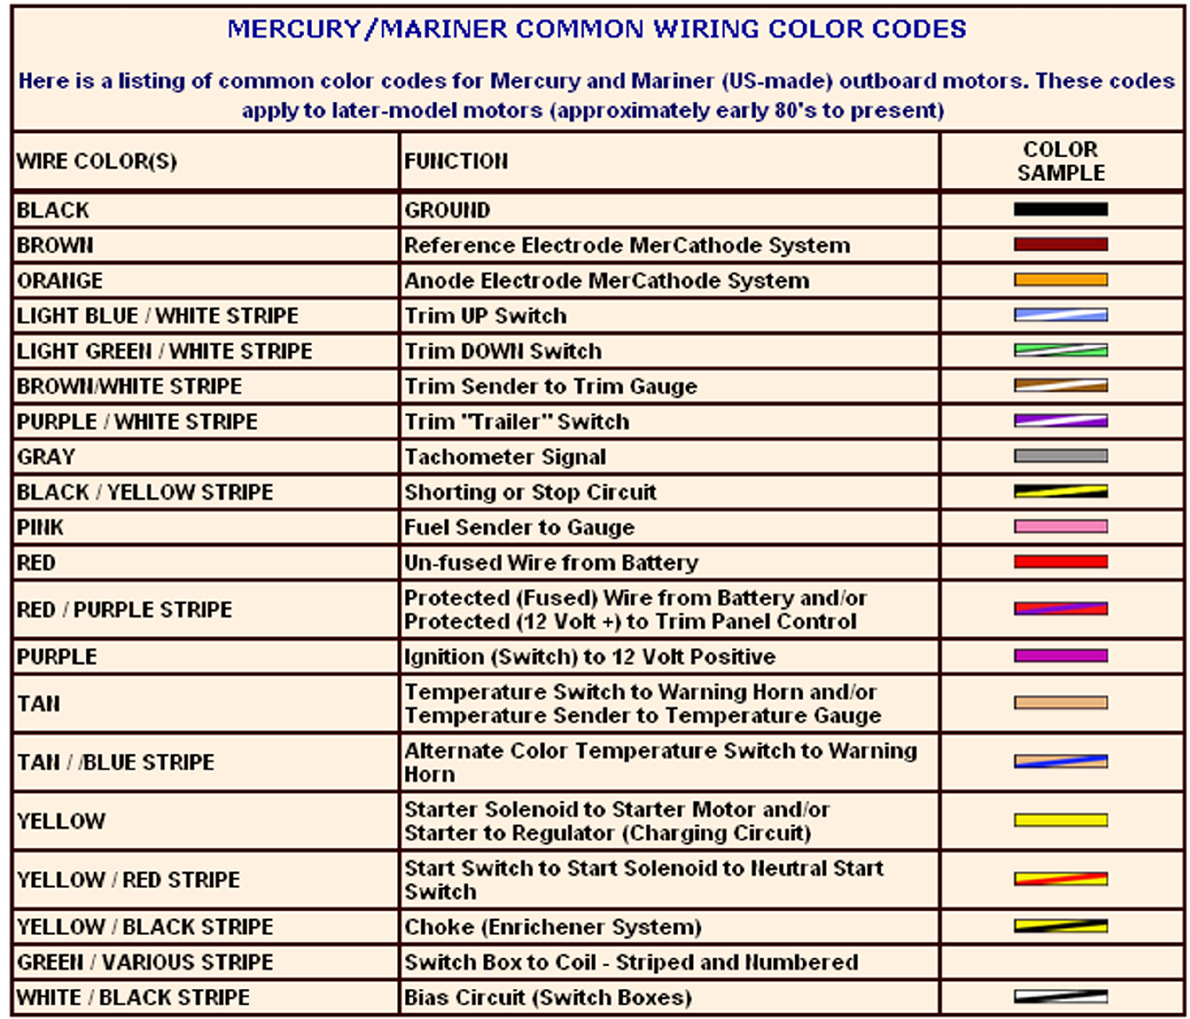 Tohatsu Outboard Wiring Harness Diagram | Wiring Diagram - Mercury Outboard Wiring Harness Diagram